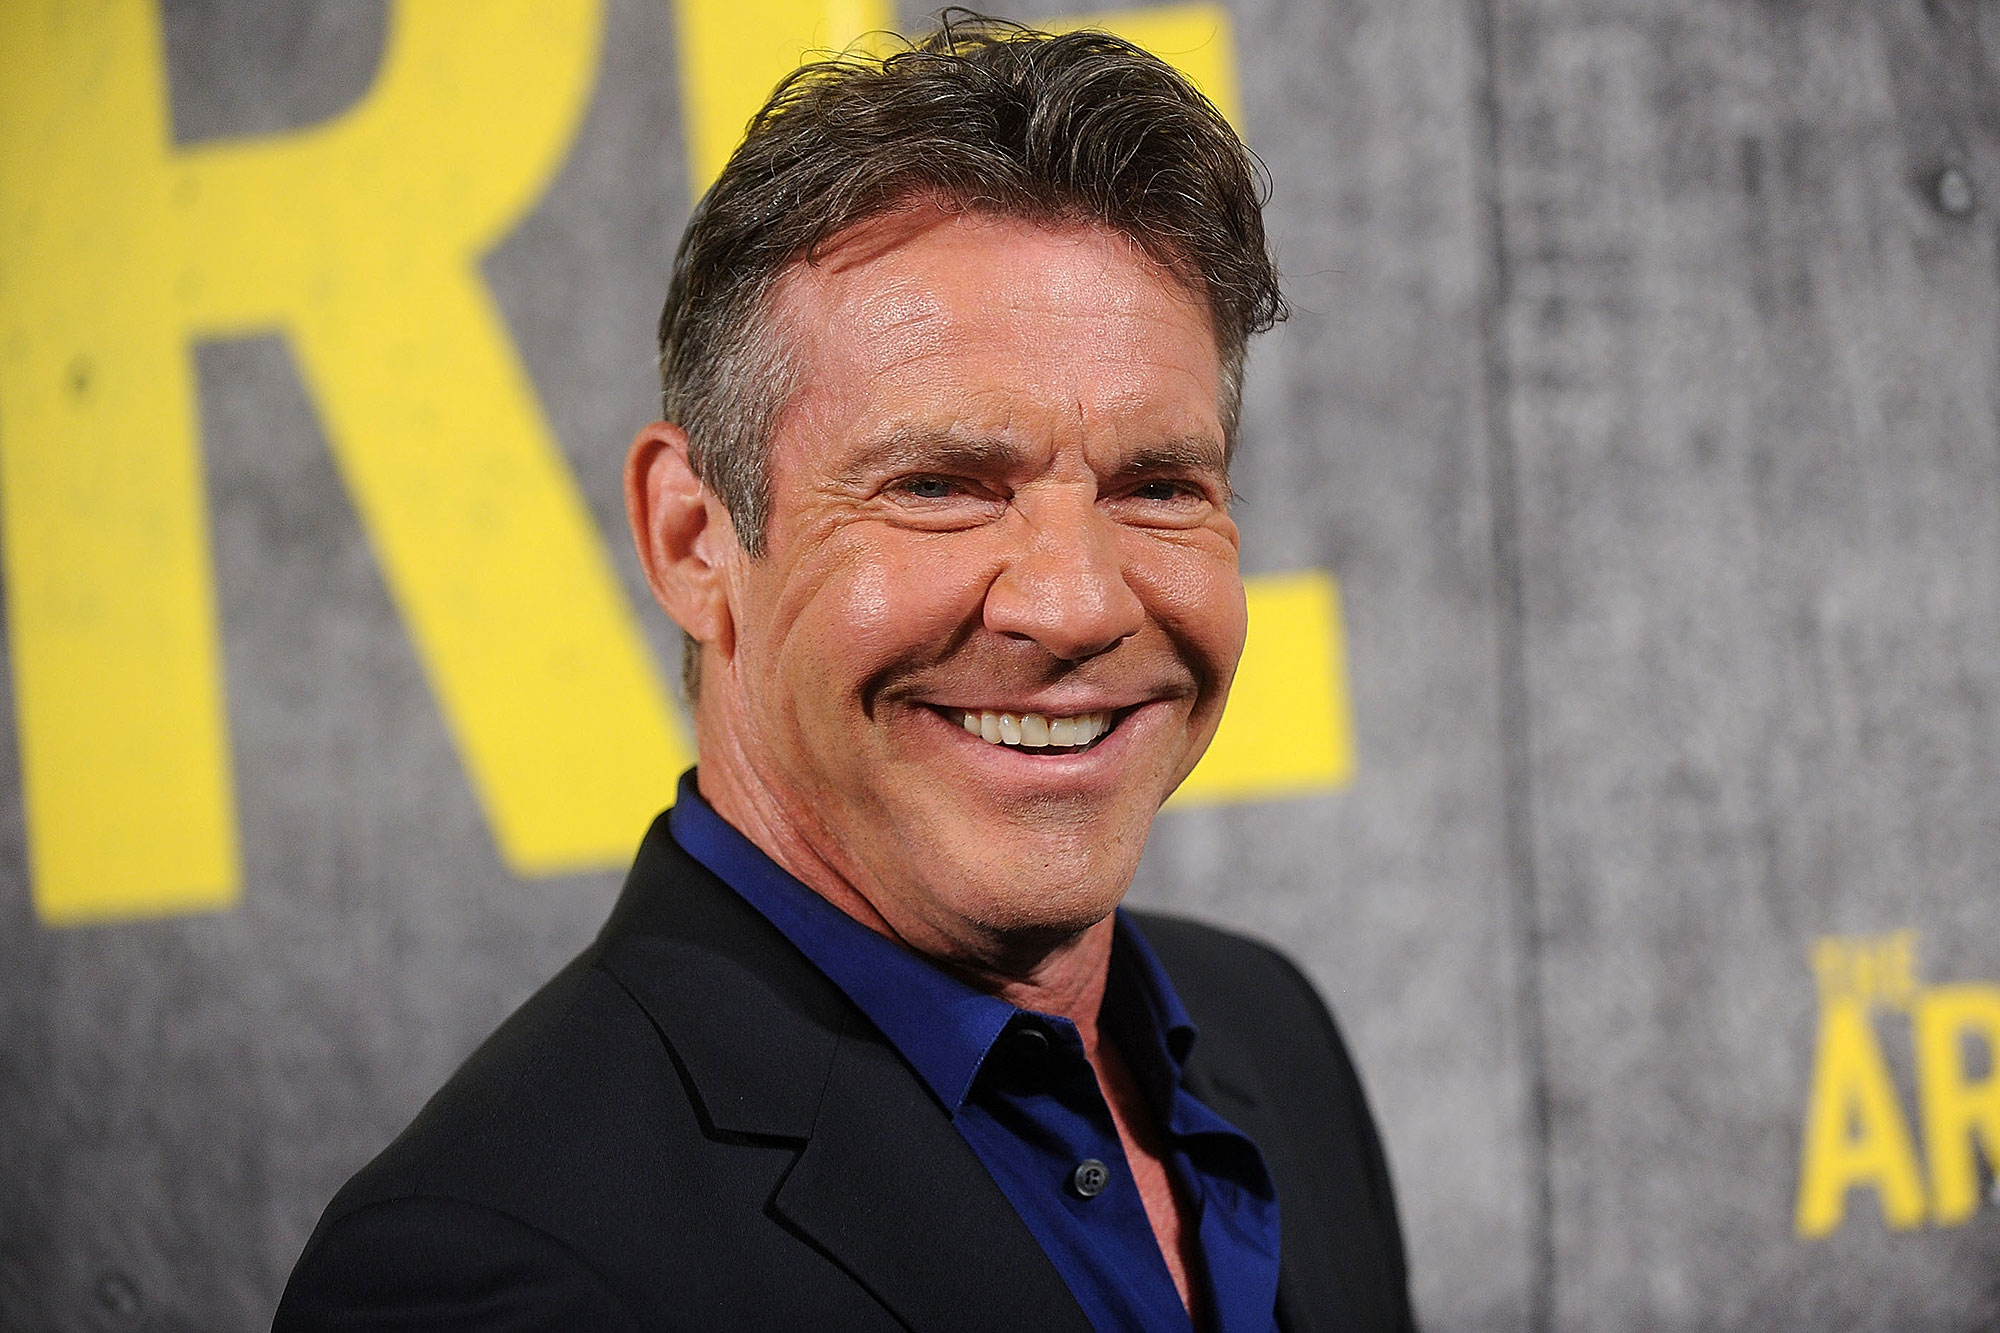 DENNIS QUAID ON ENDING HIS 'LOVE AFFAIR' WITH COCAINE